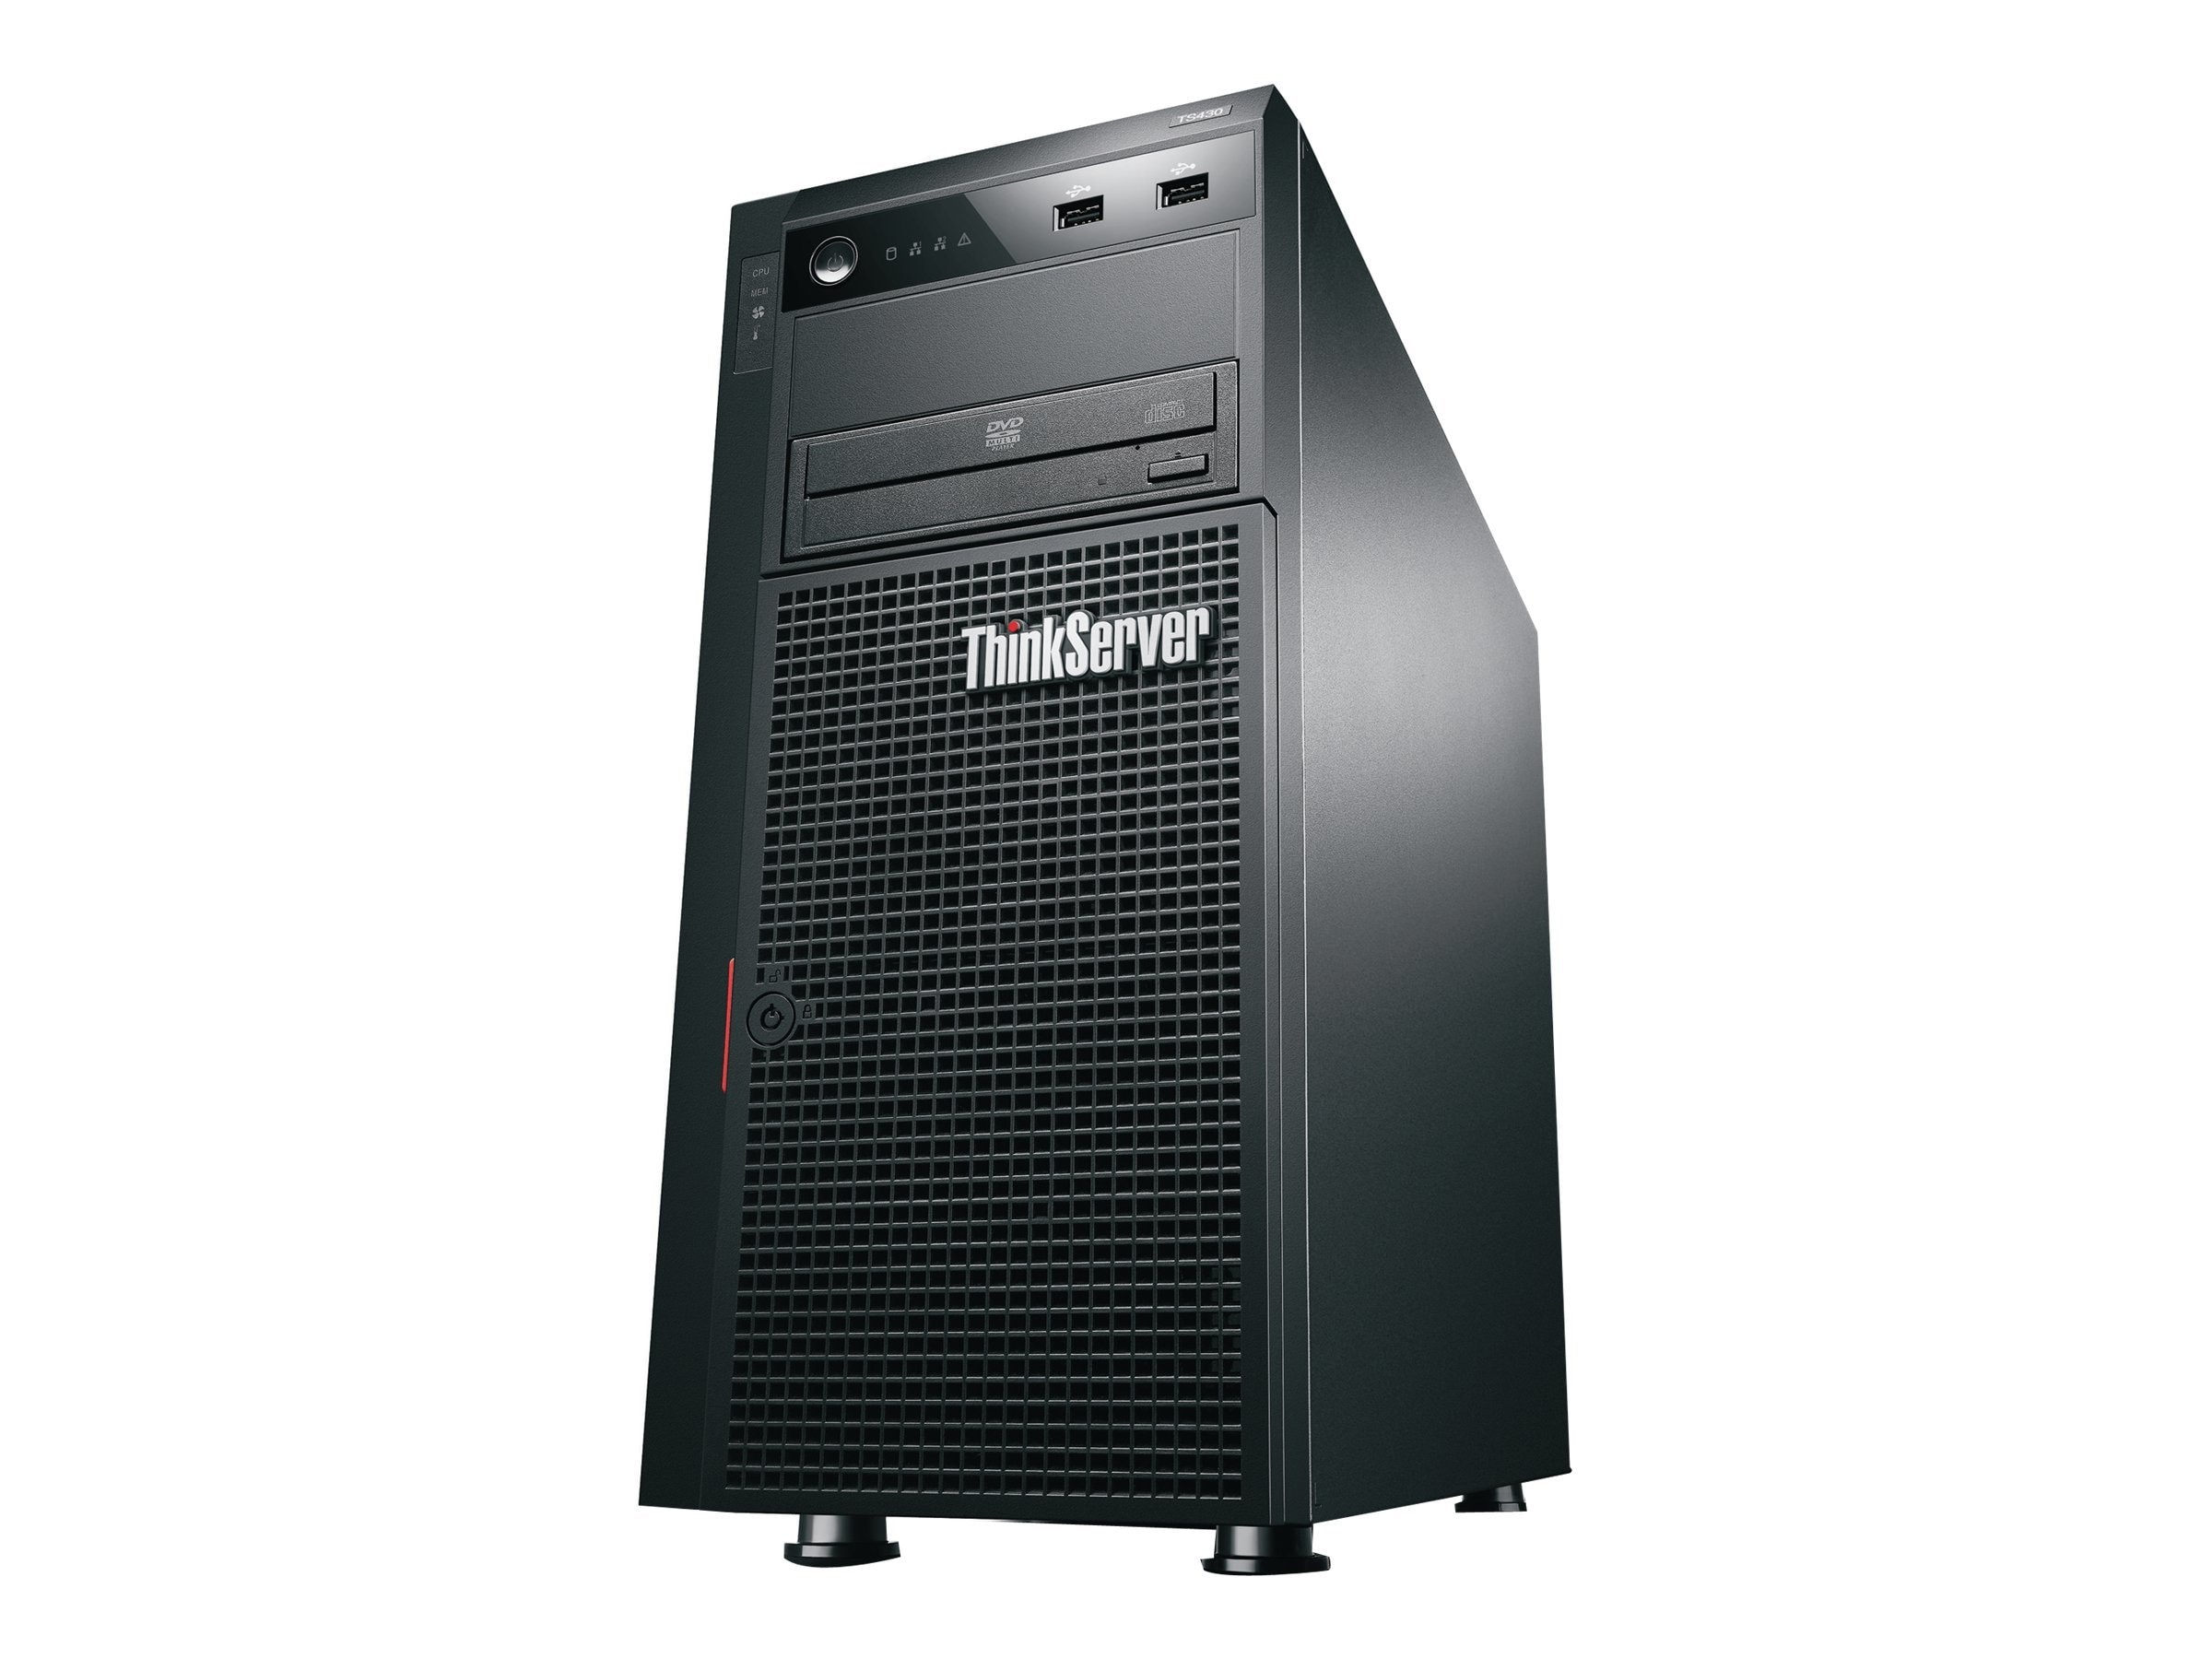 Lenovo TopSeller ThinkServer TS430 Intel 3.4GHz Xeon, 039016U, 14413914, Servers